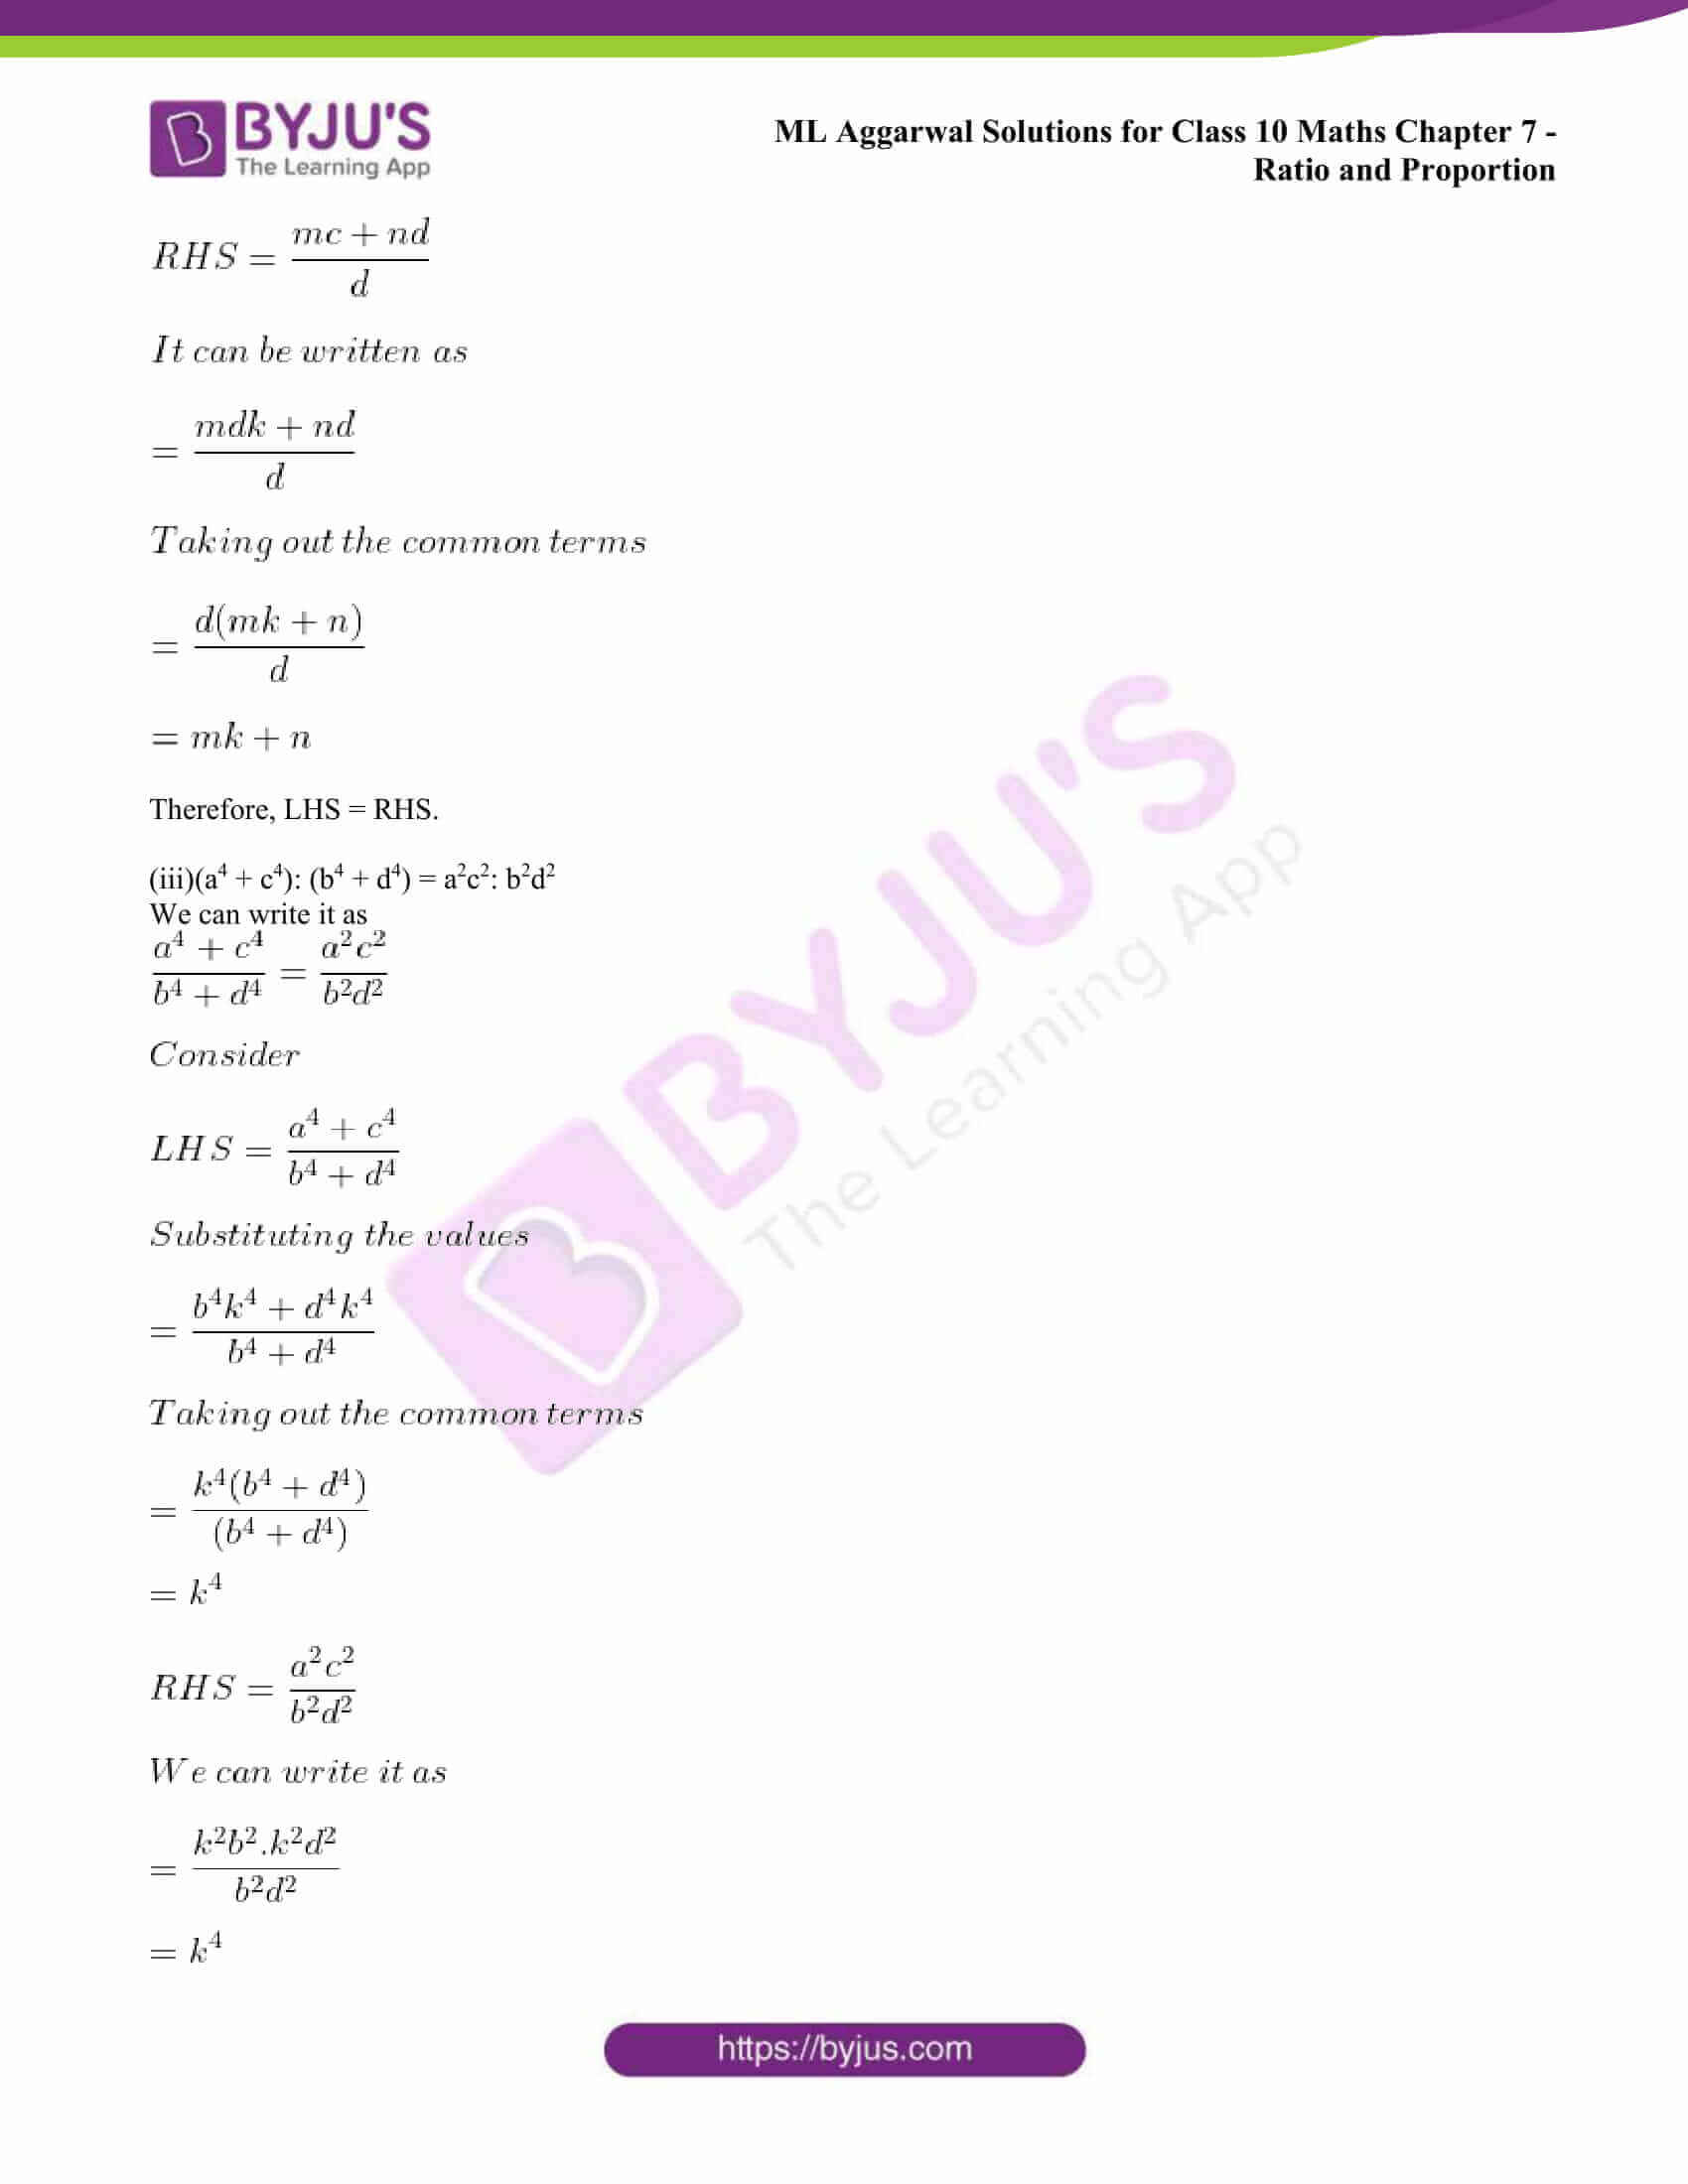 ml aggarwal solutions class 10 maths chapter 7 31